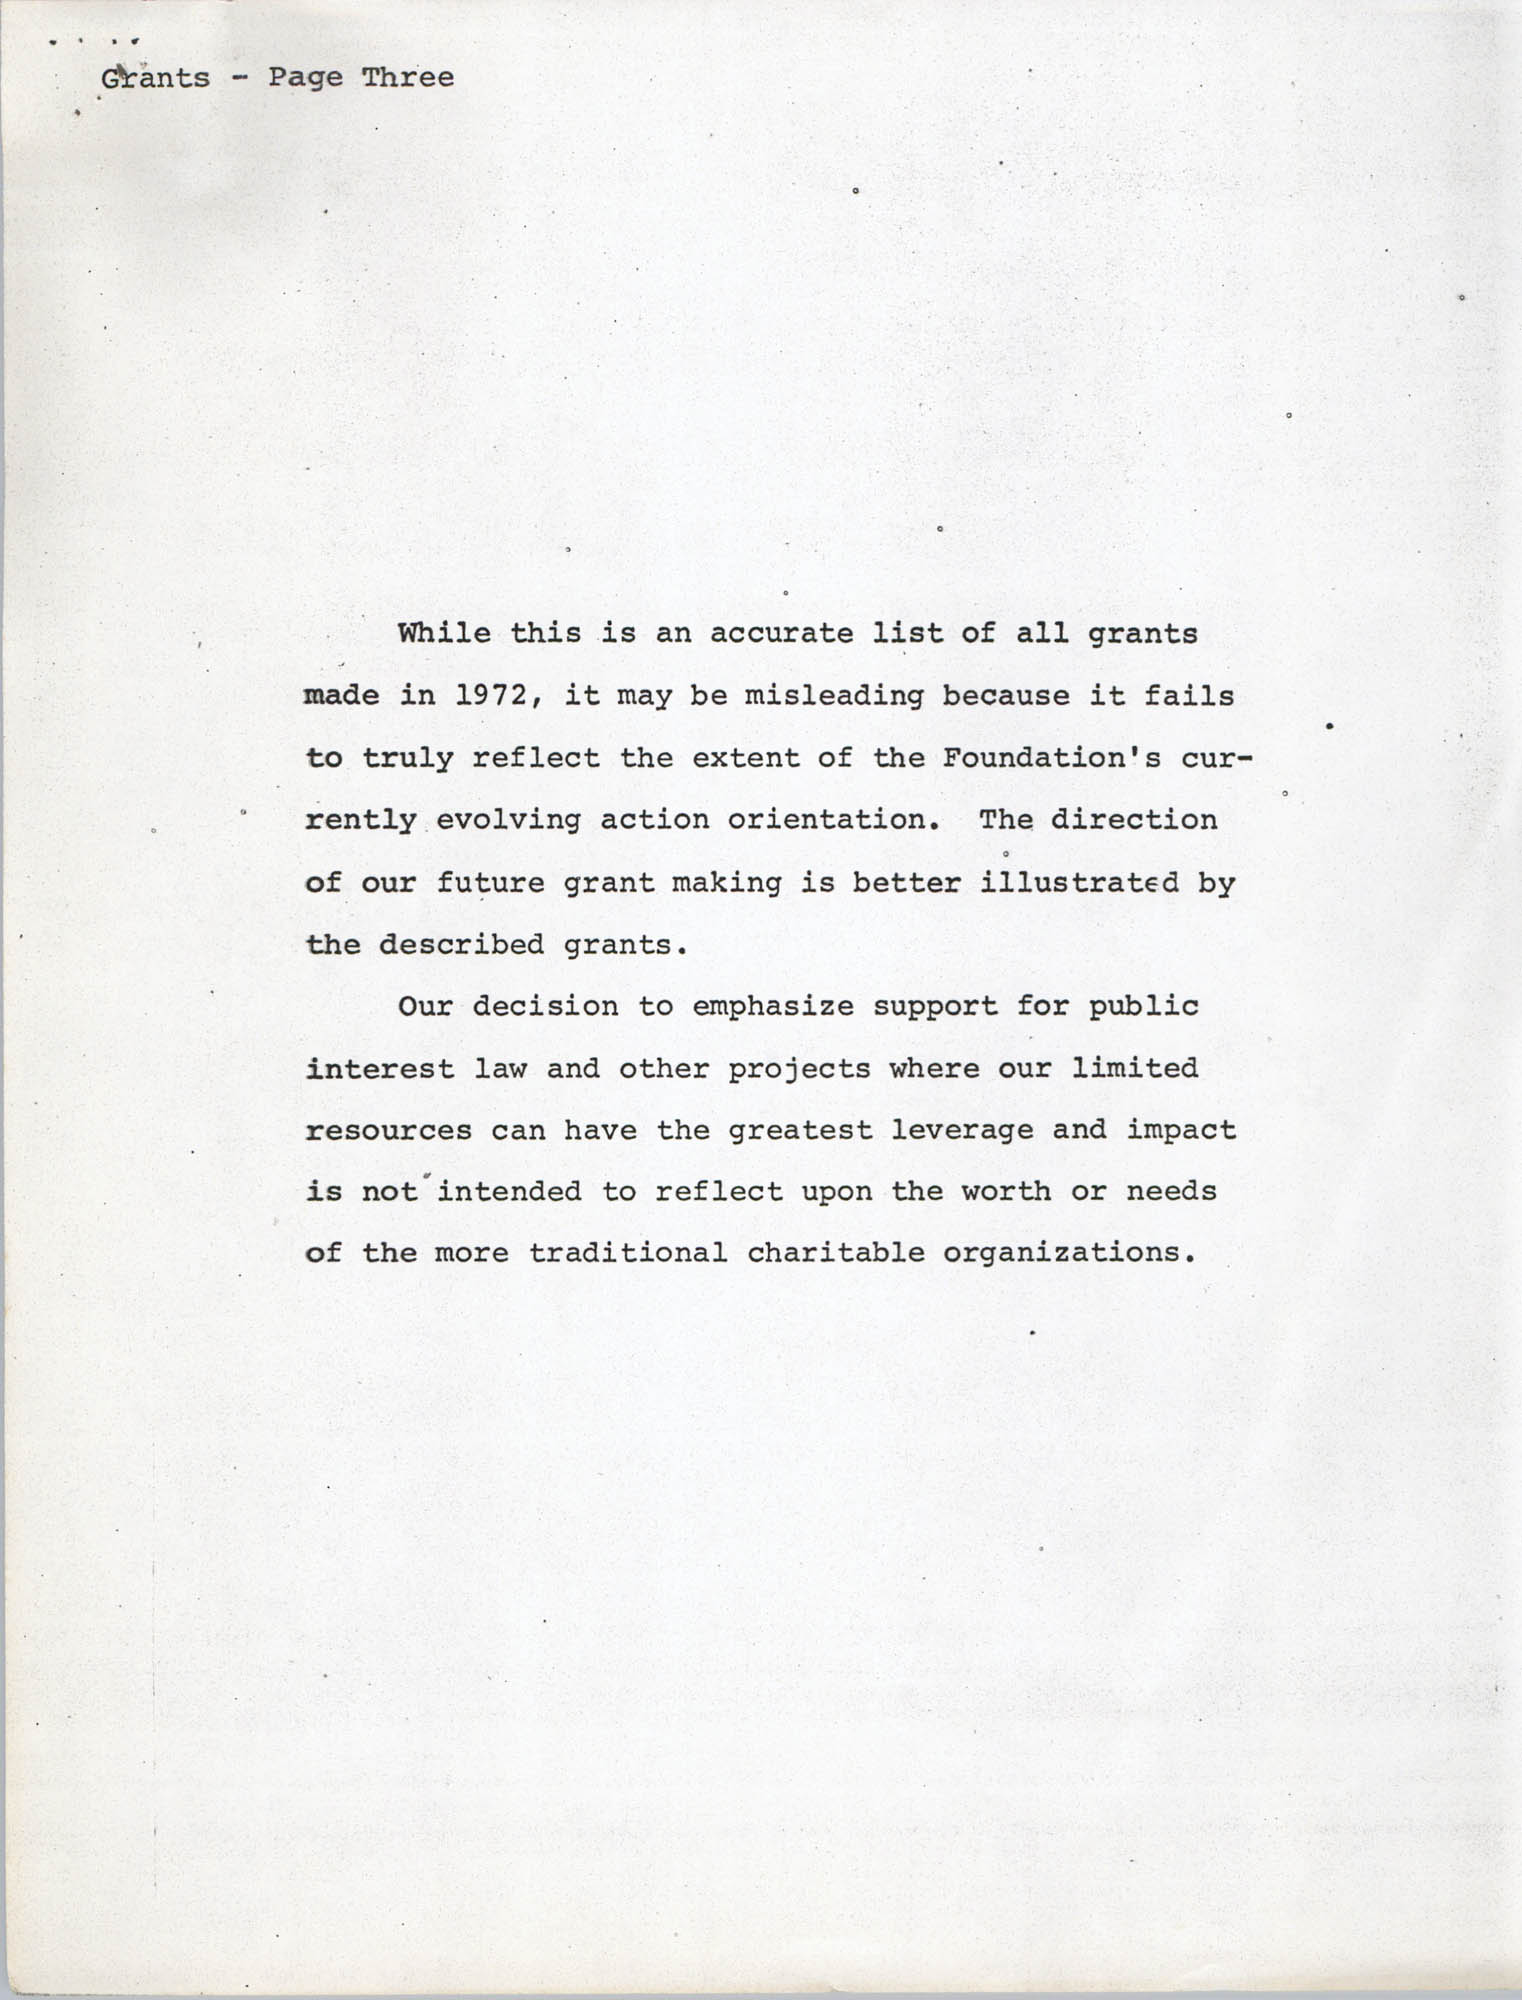 Josephine H. McIntosh Foundation Grant-Making Activities Report for 1972, Grants Page 3